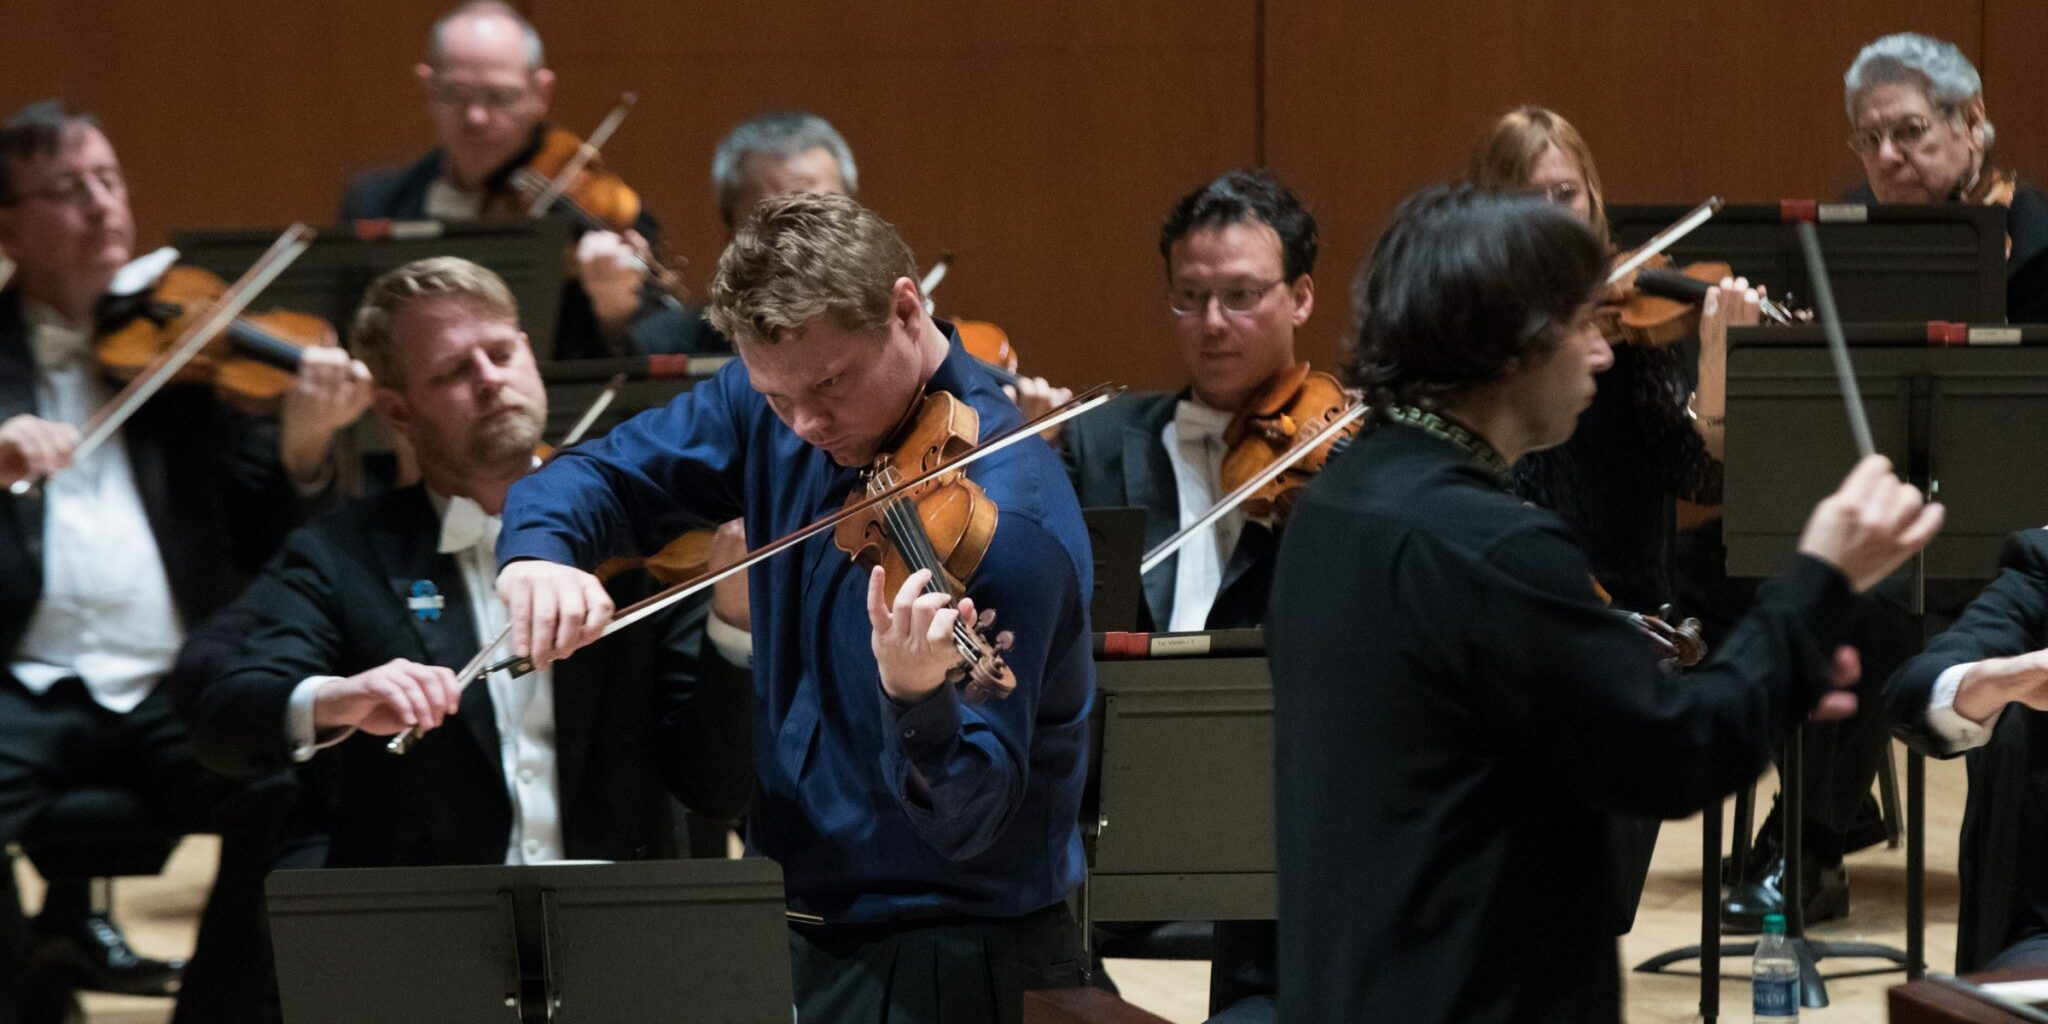 David Coucheron plays the violin, Henrik Nánási and the Atlanta Symphony Orchestra